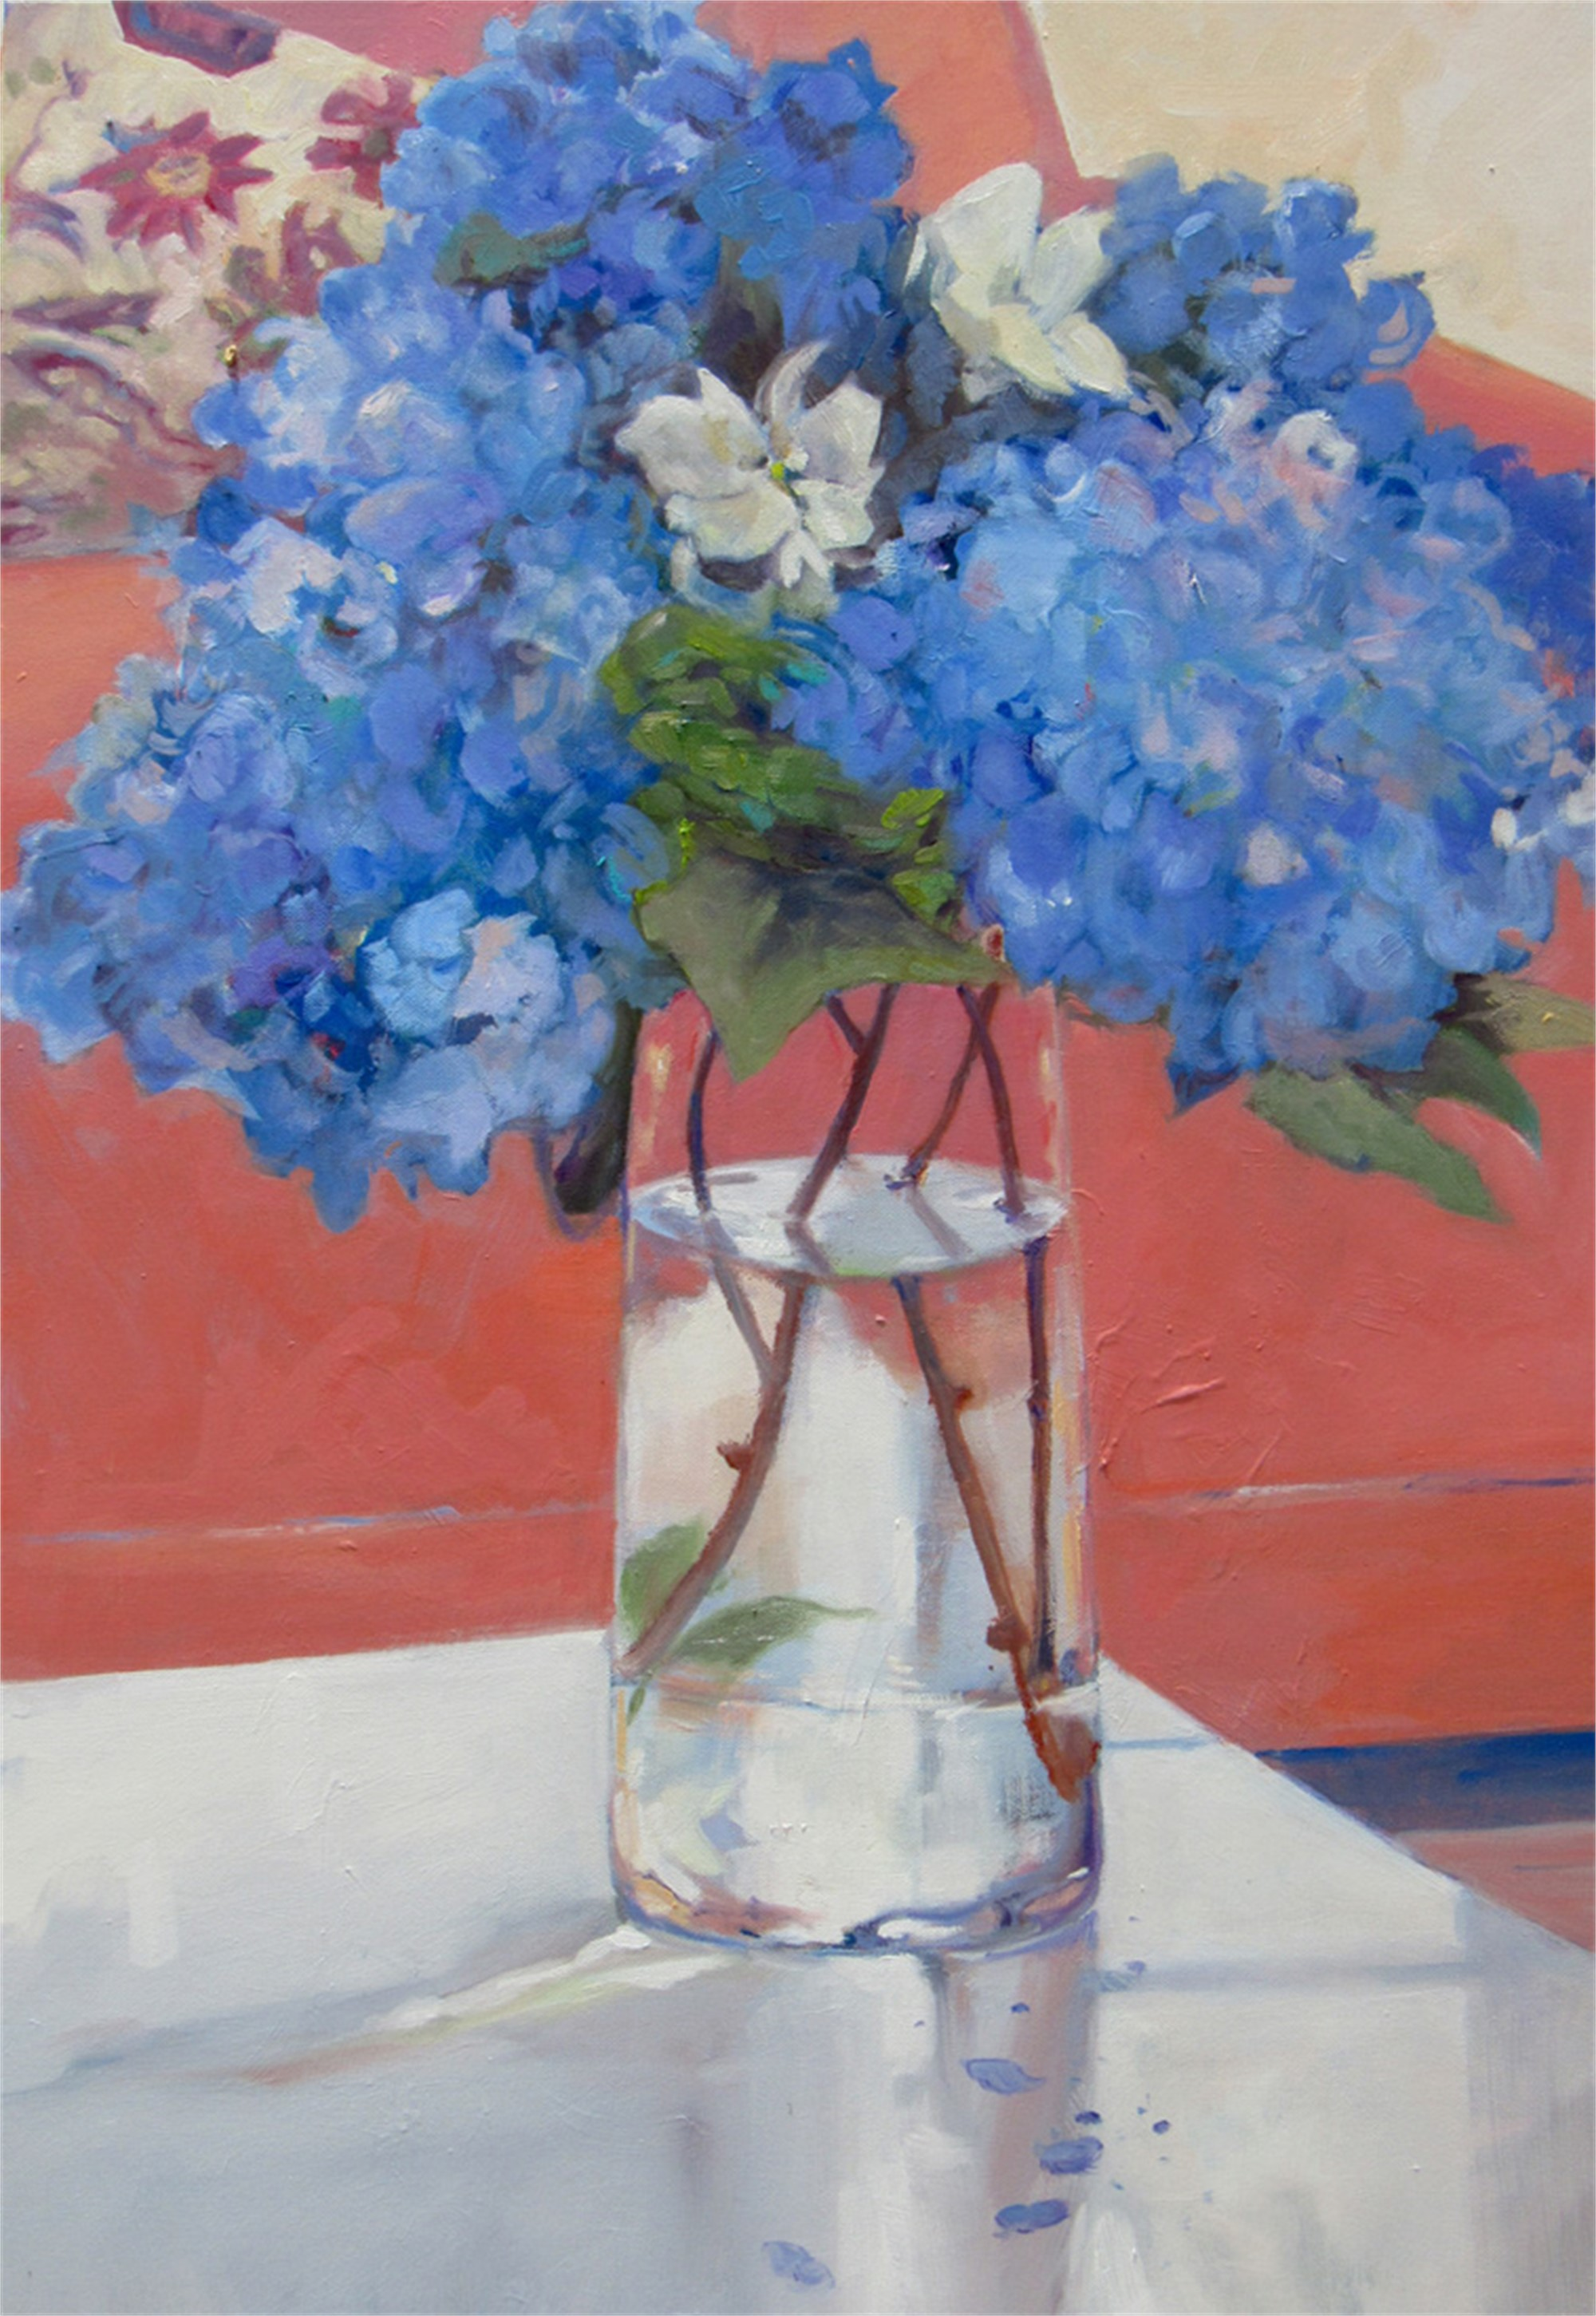 Hydrangeas and Rhododendrons by Madeline Dukes